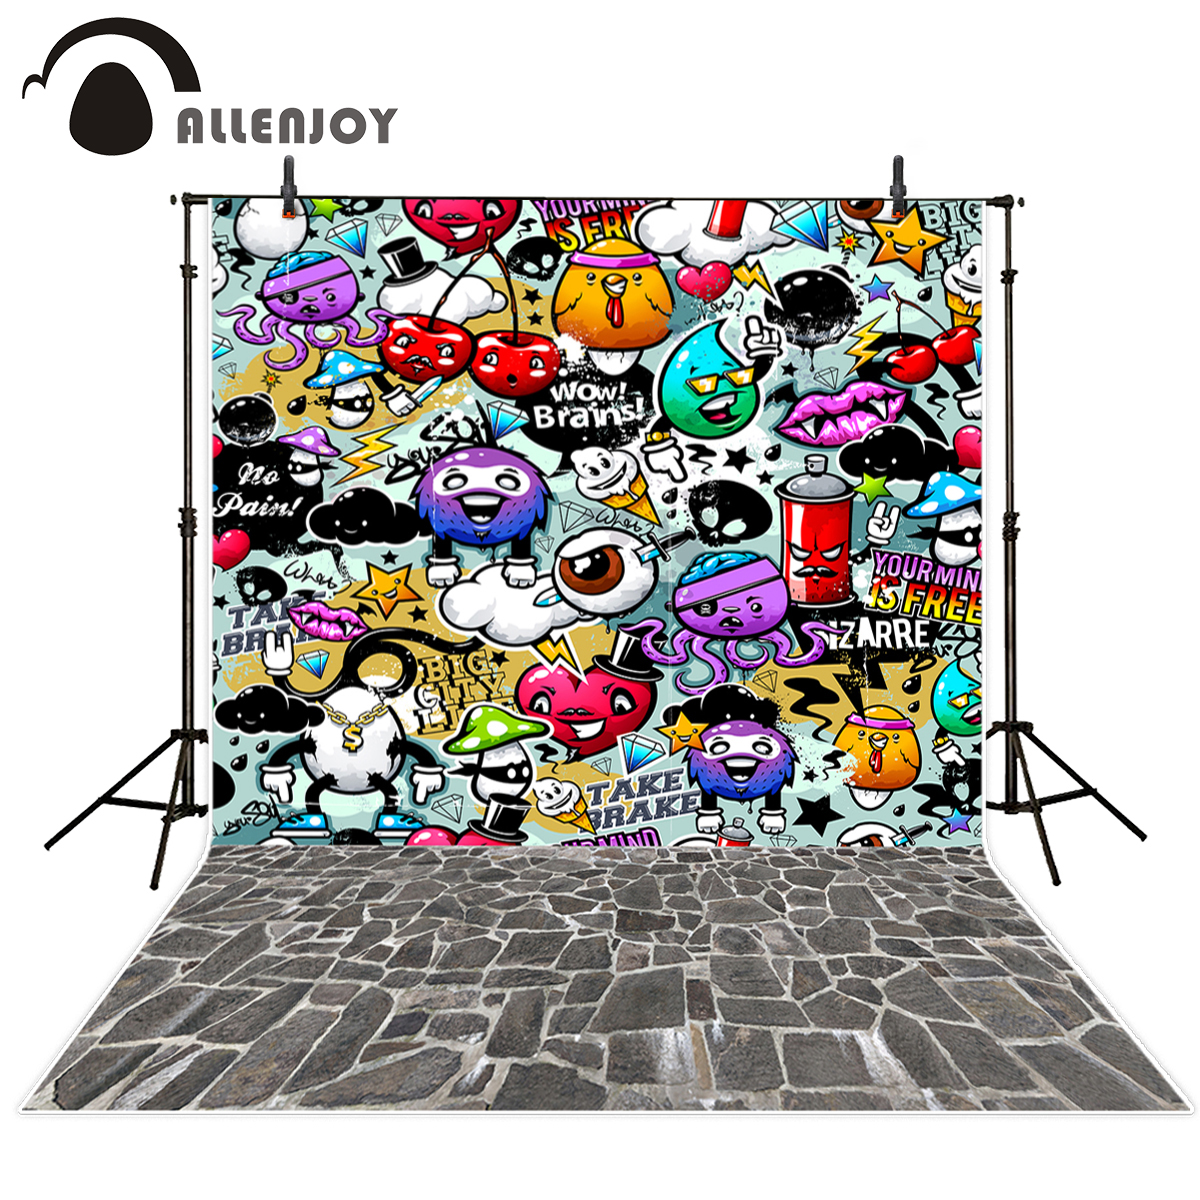 Allenjoy Graffiti photographic background cartoon children character wall photography studio interesting camera fotografica